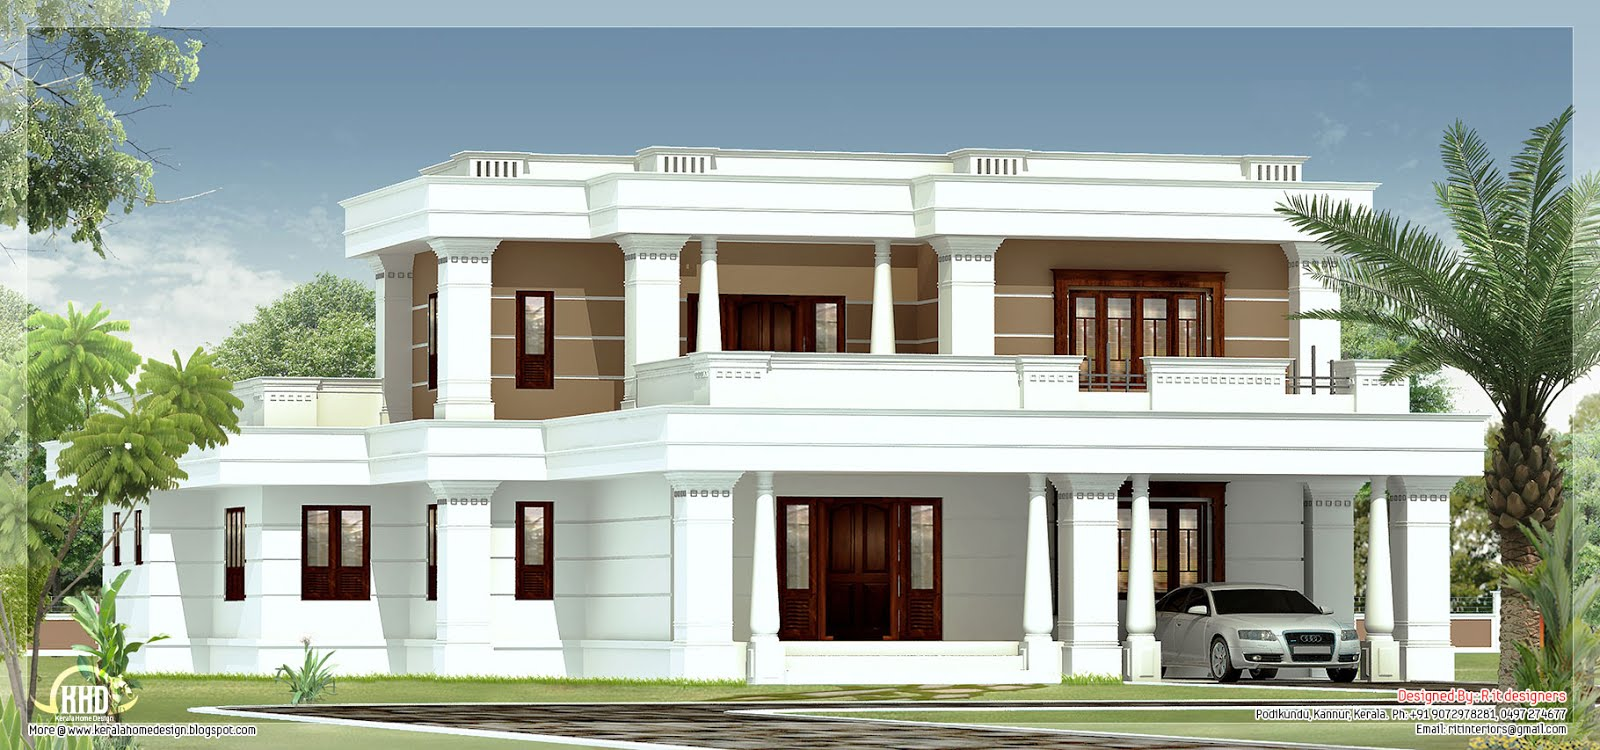 4 bedroom flat roof villa house design plans House plan flat roof design